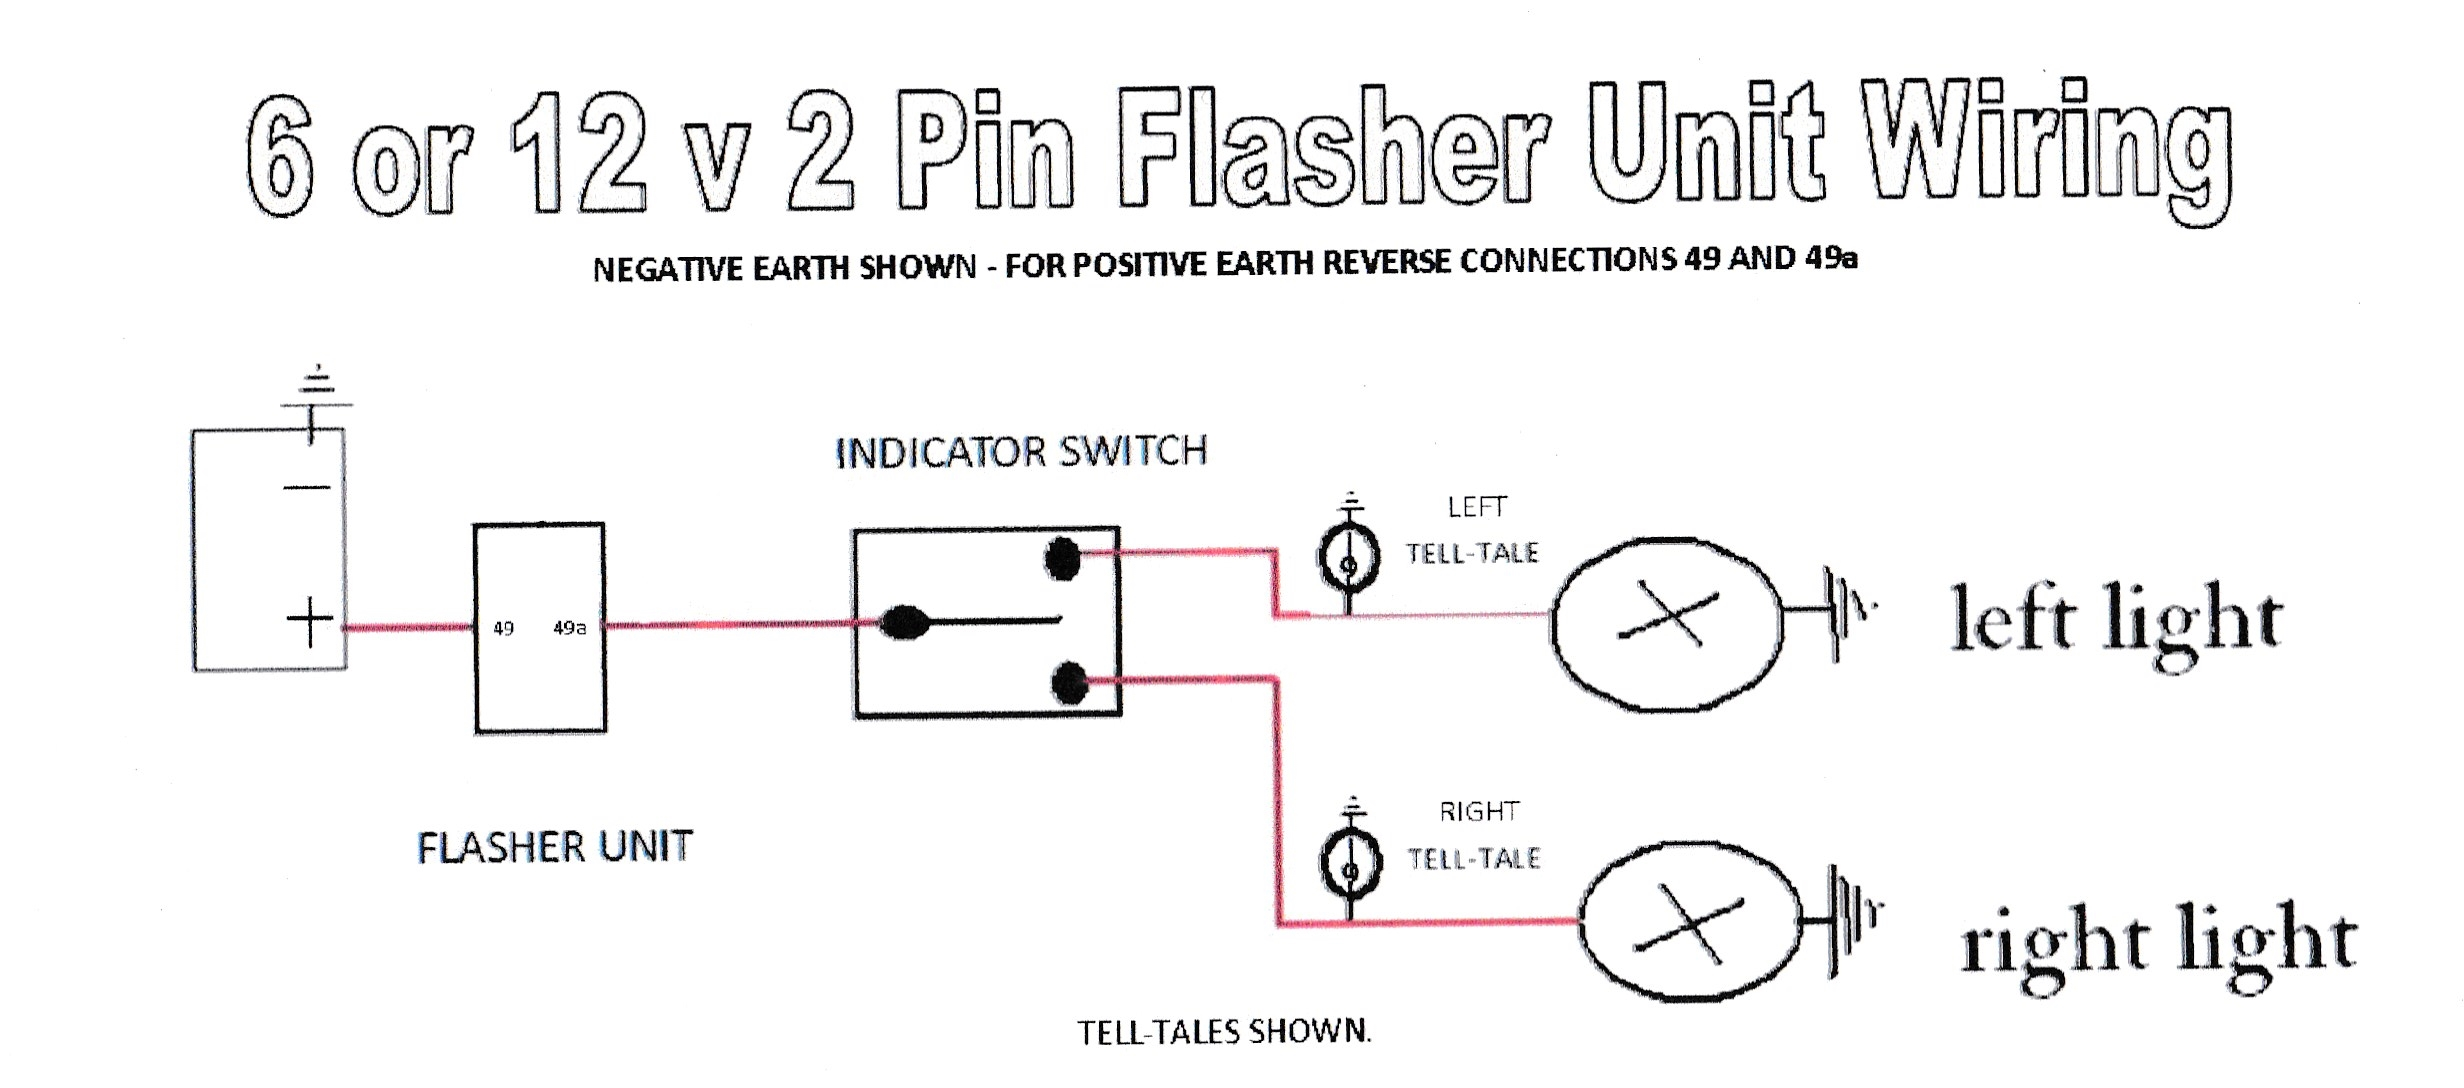 Wiring Diagram Indicator : Wiring diagrams to assist you with connecting up